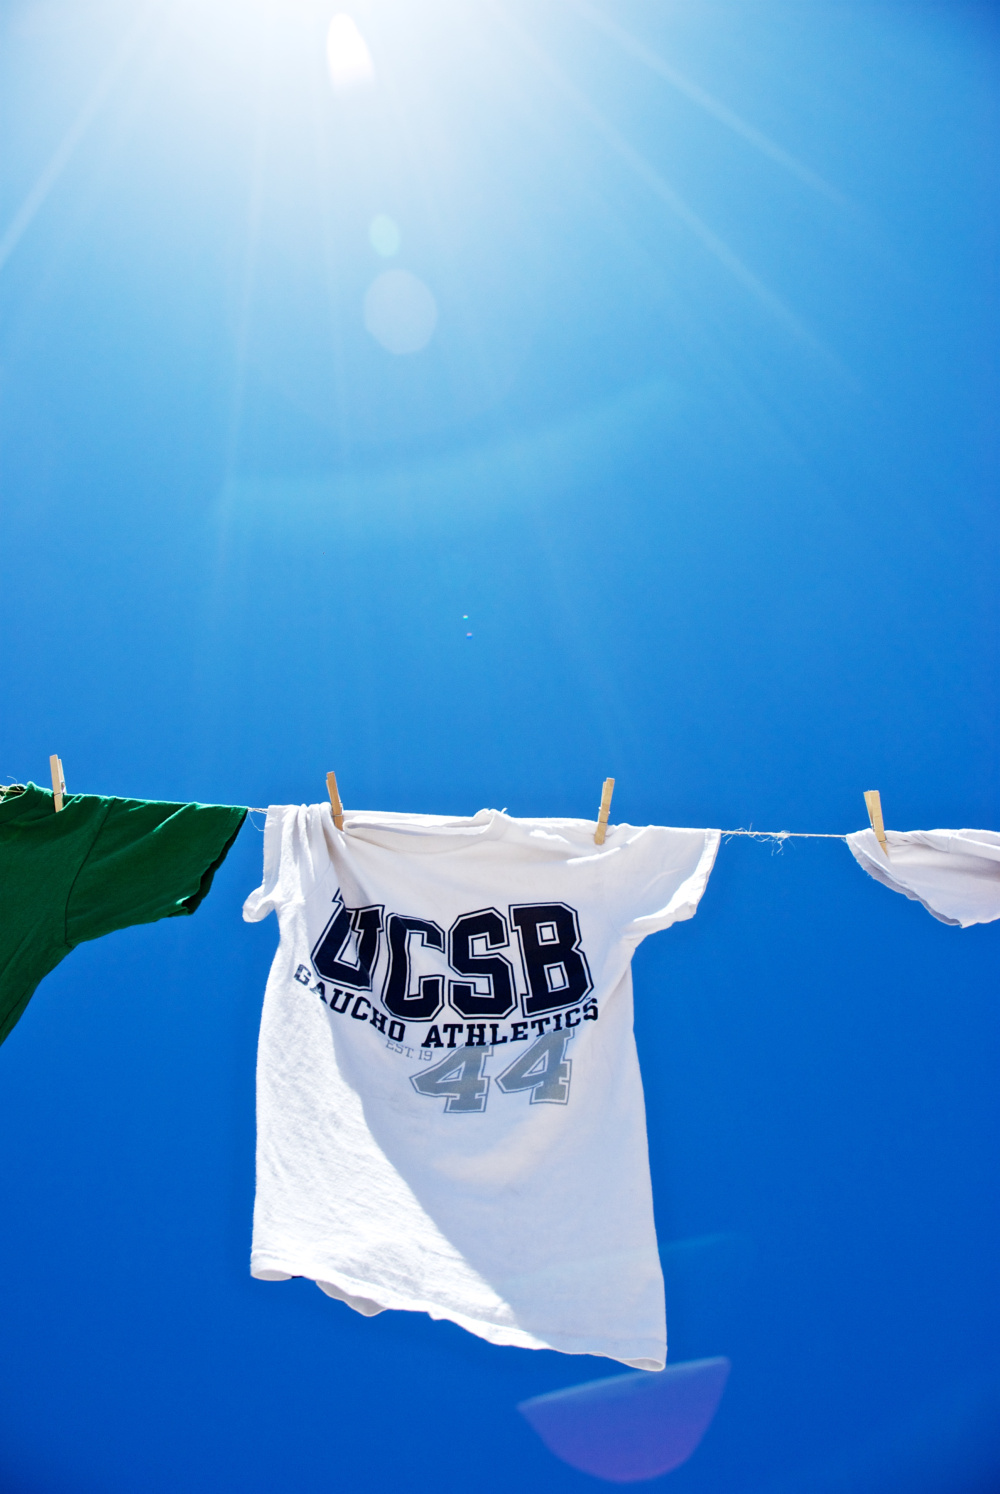 "Among the bookstore's most popular items are ""collegiate licensed apparel""—clothing that bears the UCSB name and logo, but are produced abroad under unknown conditions. - (photo by Brandon Yadegari)"